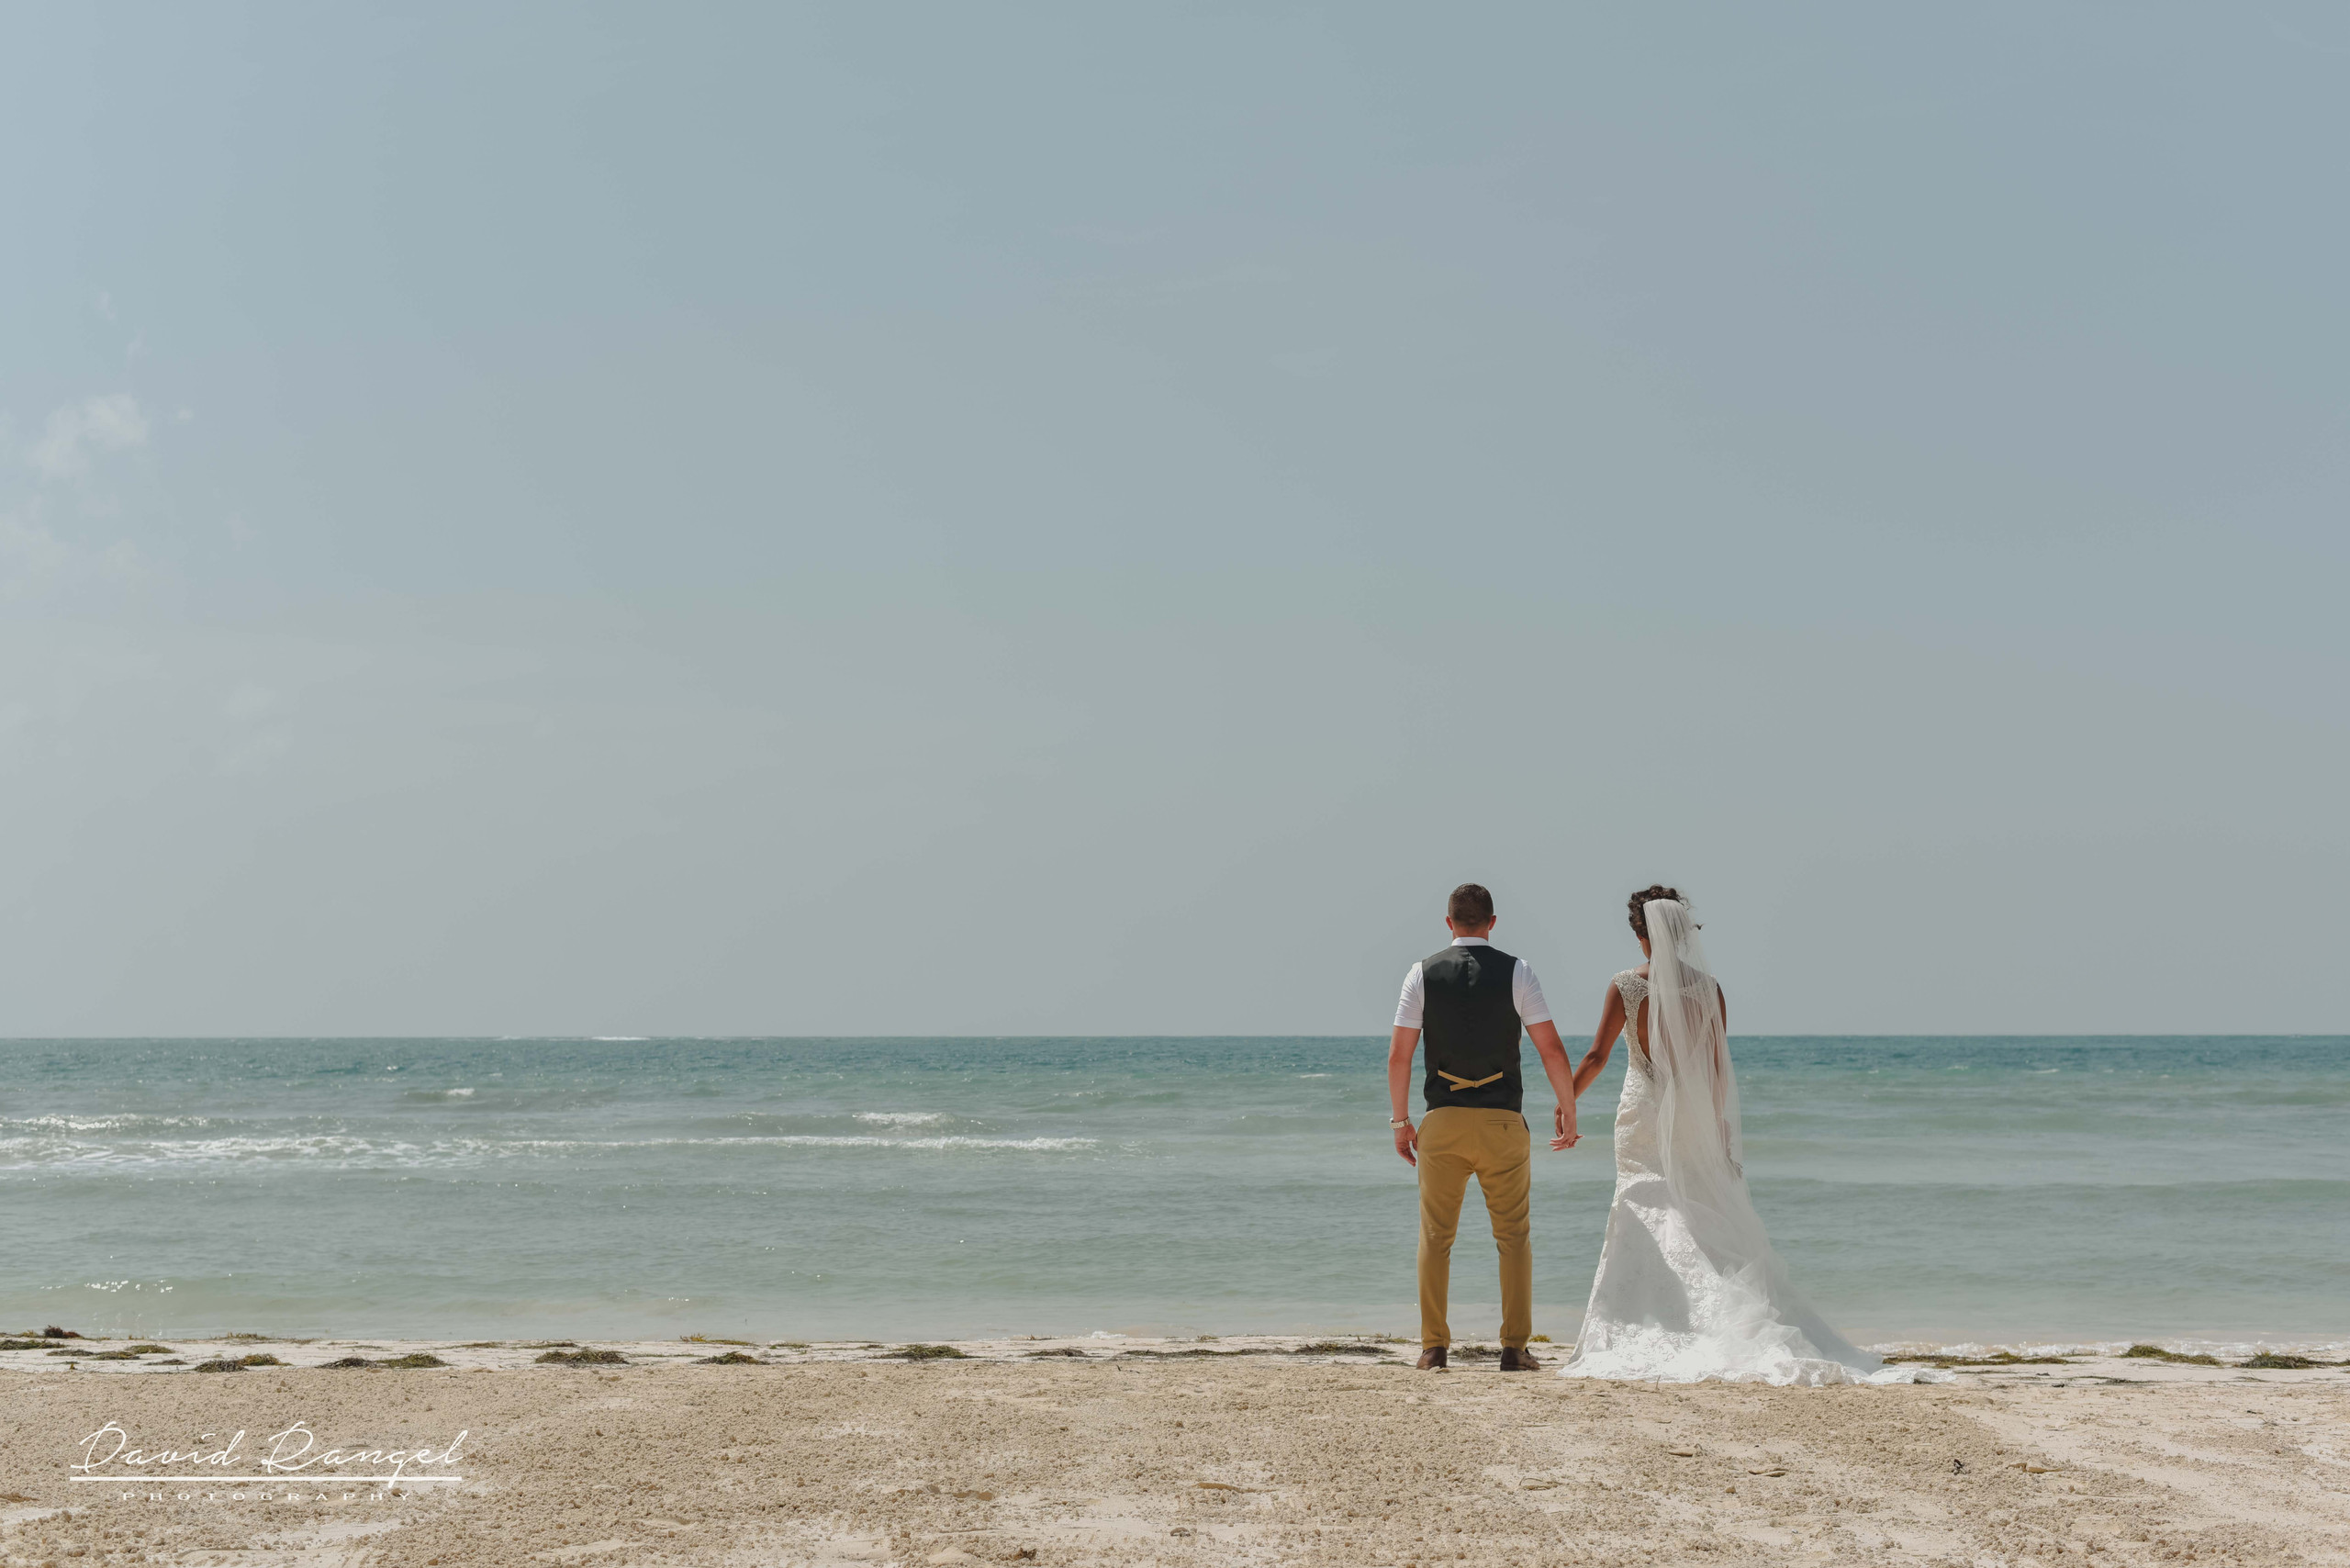 bride+and+groom+photos+on+the+beach